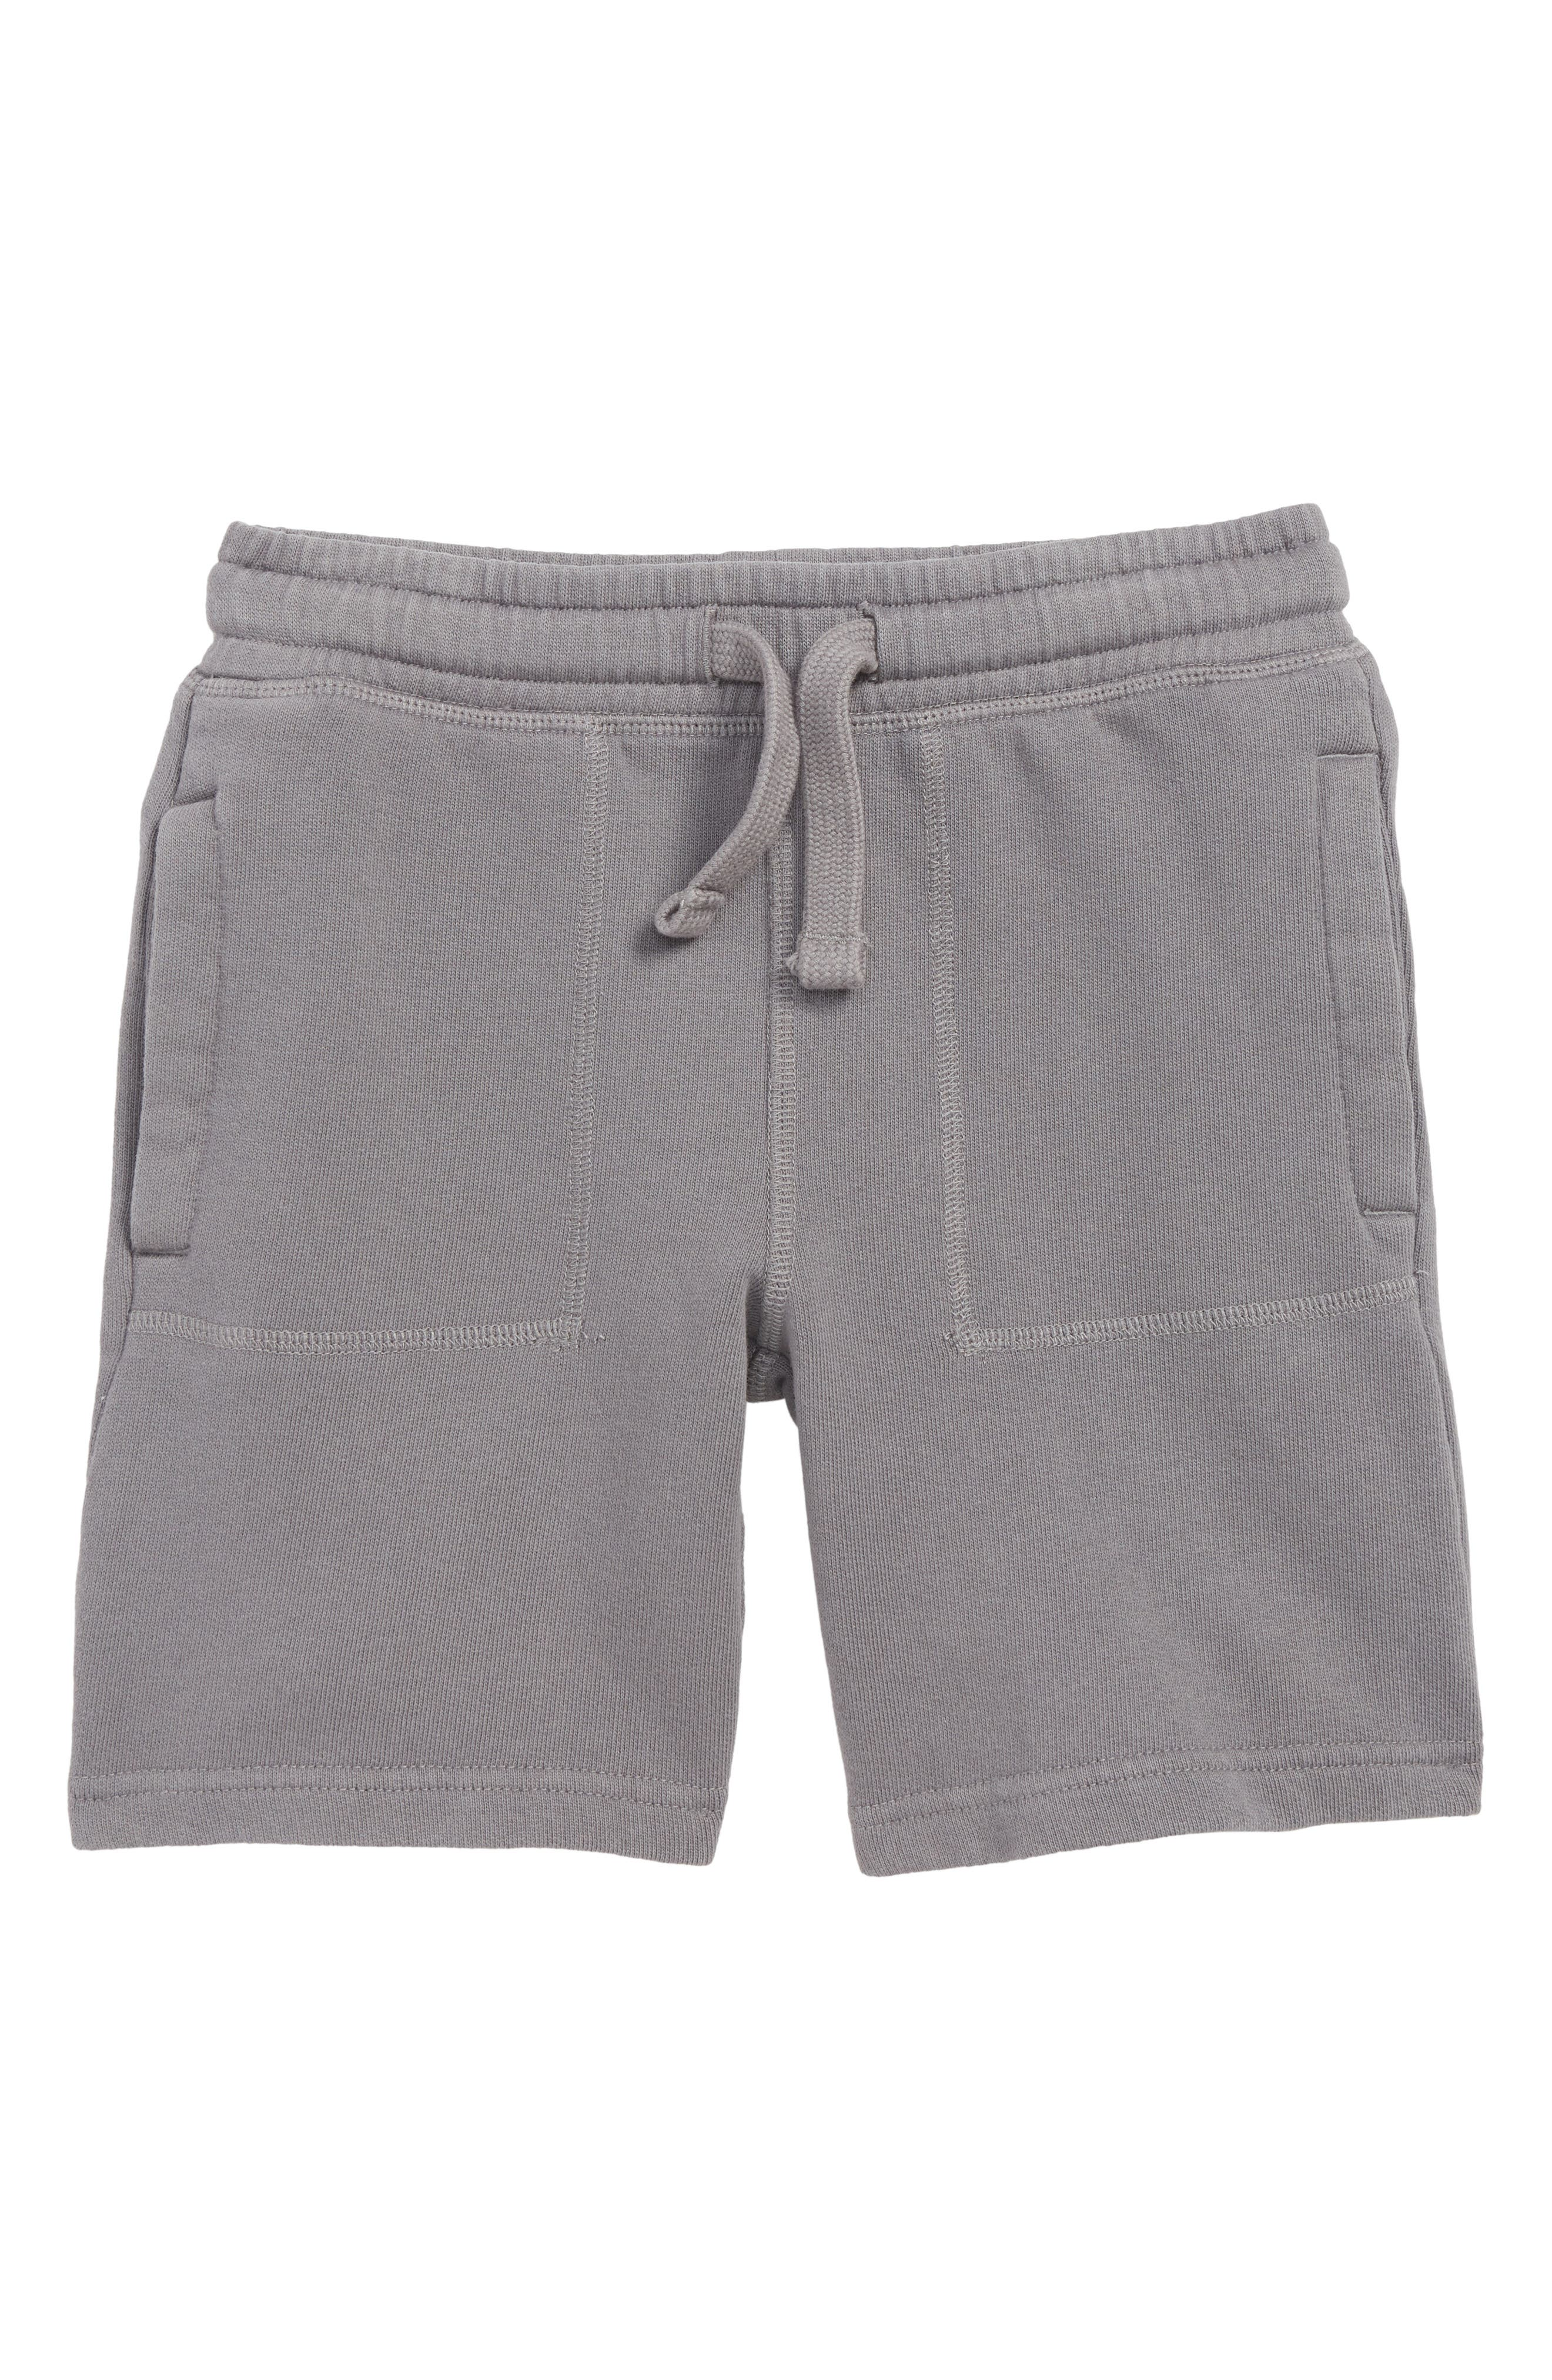 MINI BODEN Garment Dyed Sweat Shorts, Main, color, PEWTER GREY